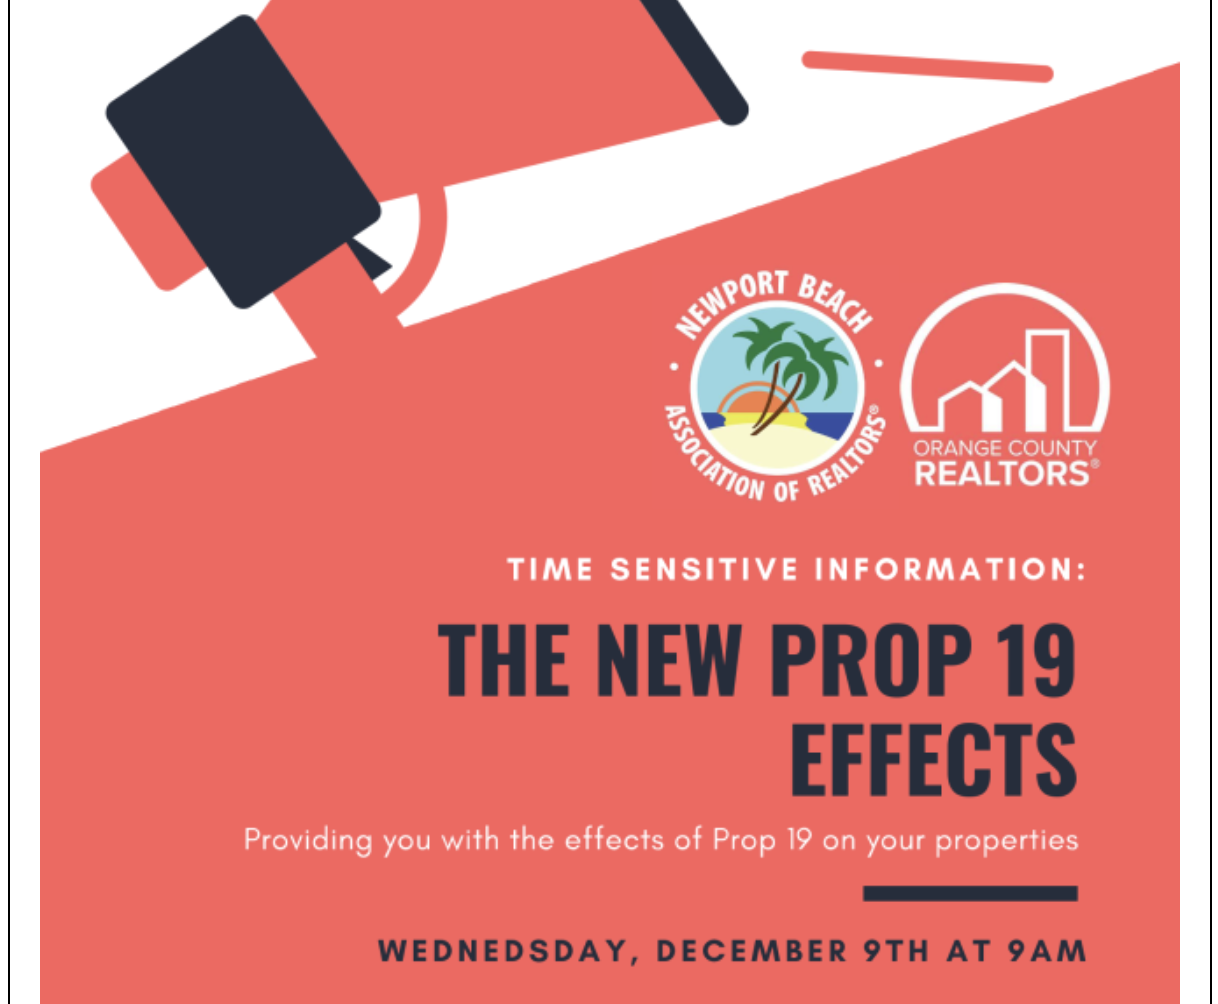 DEVIN LUCAS PRESENTS ON Proposition 19: A Massive Property Tax Hike on Family Transfers Effective February 16, 2021